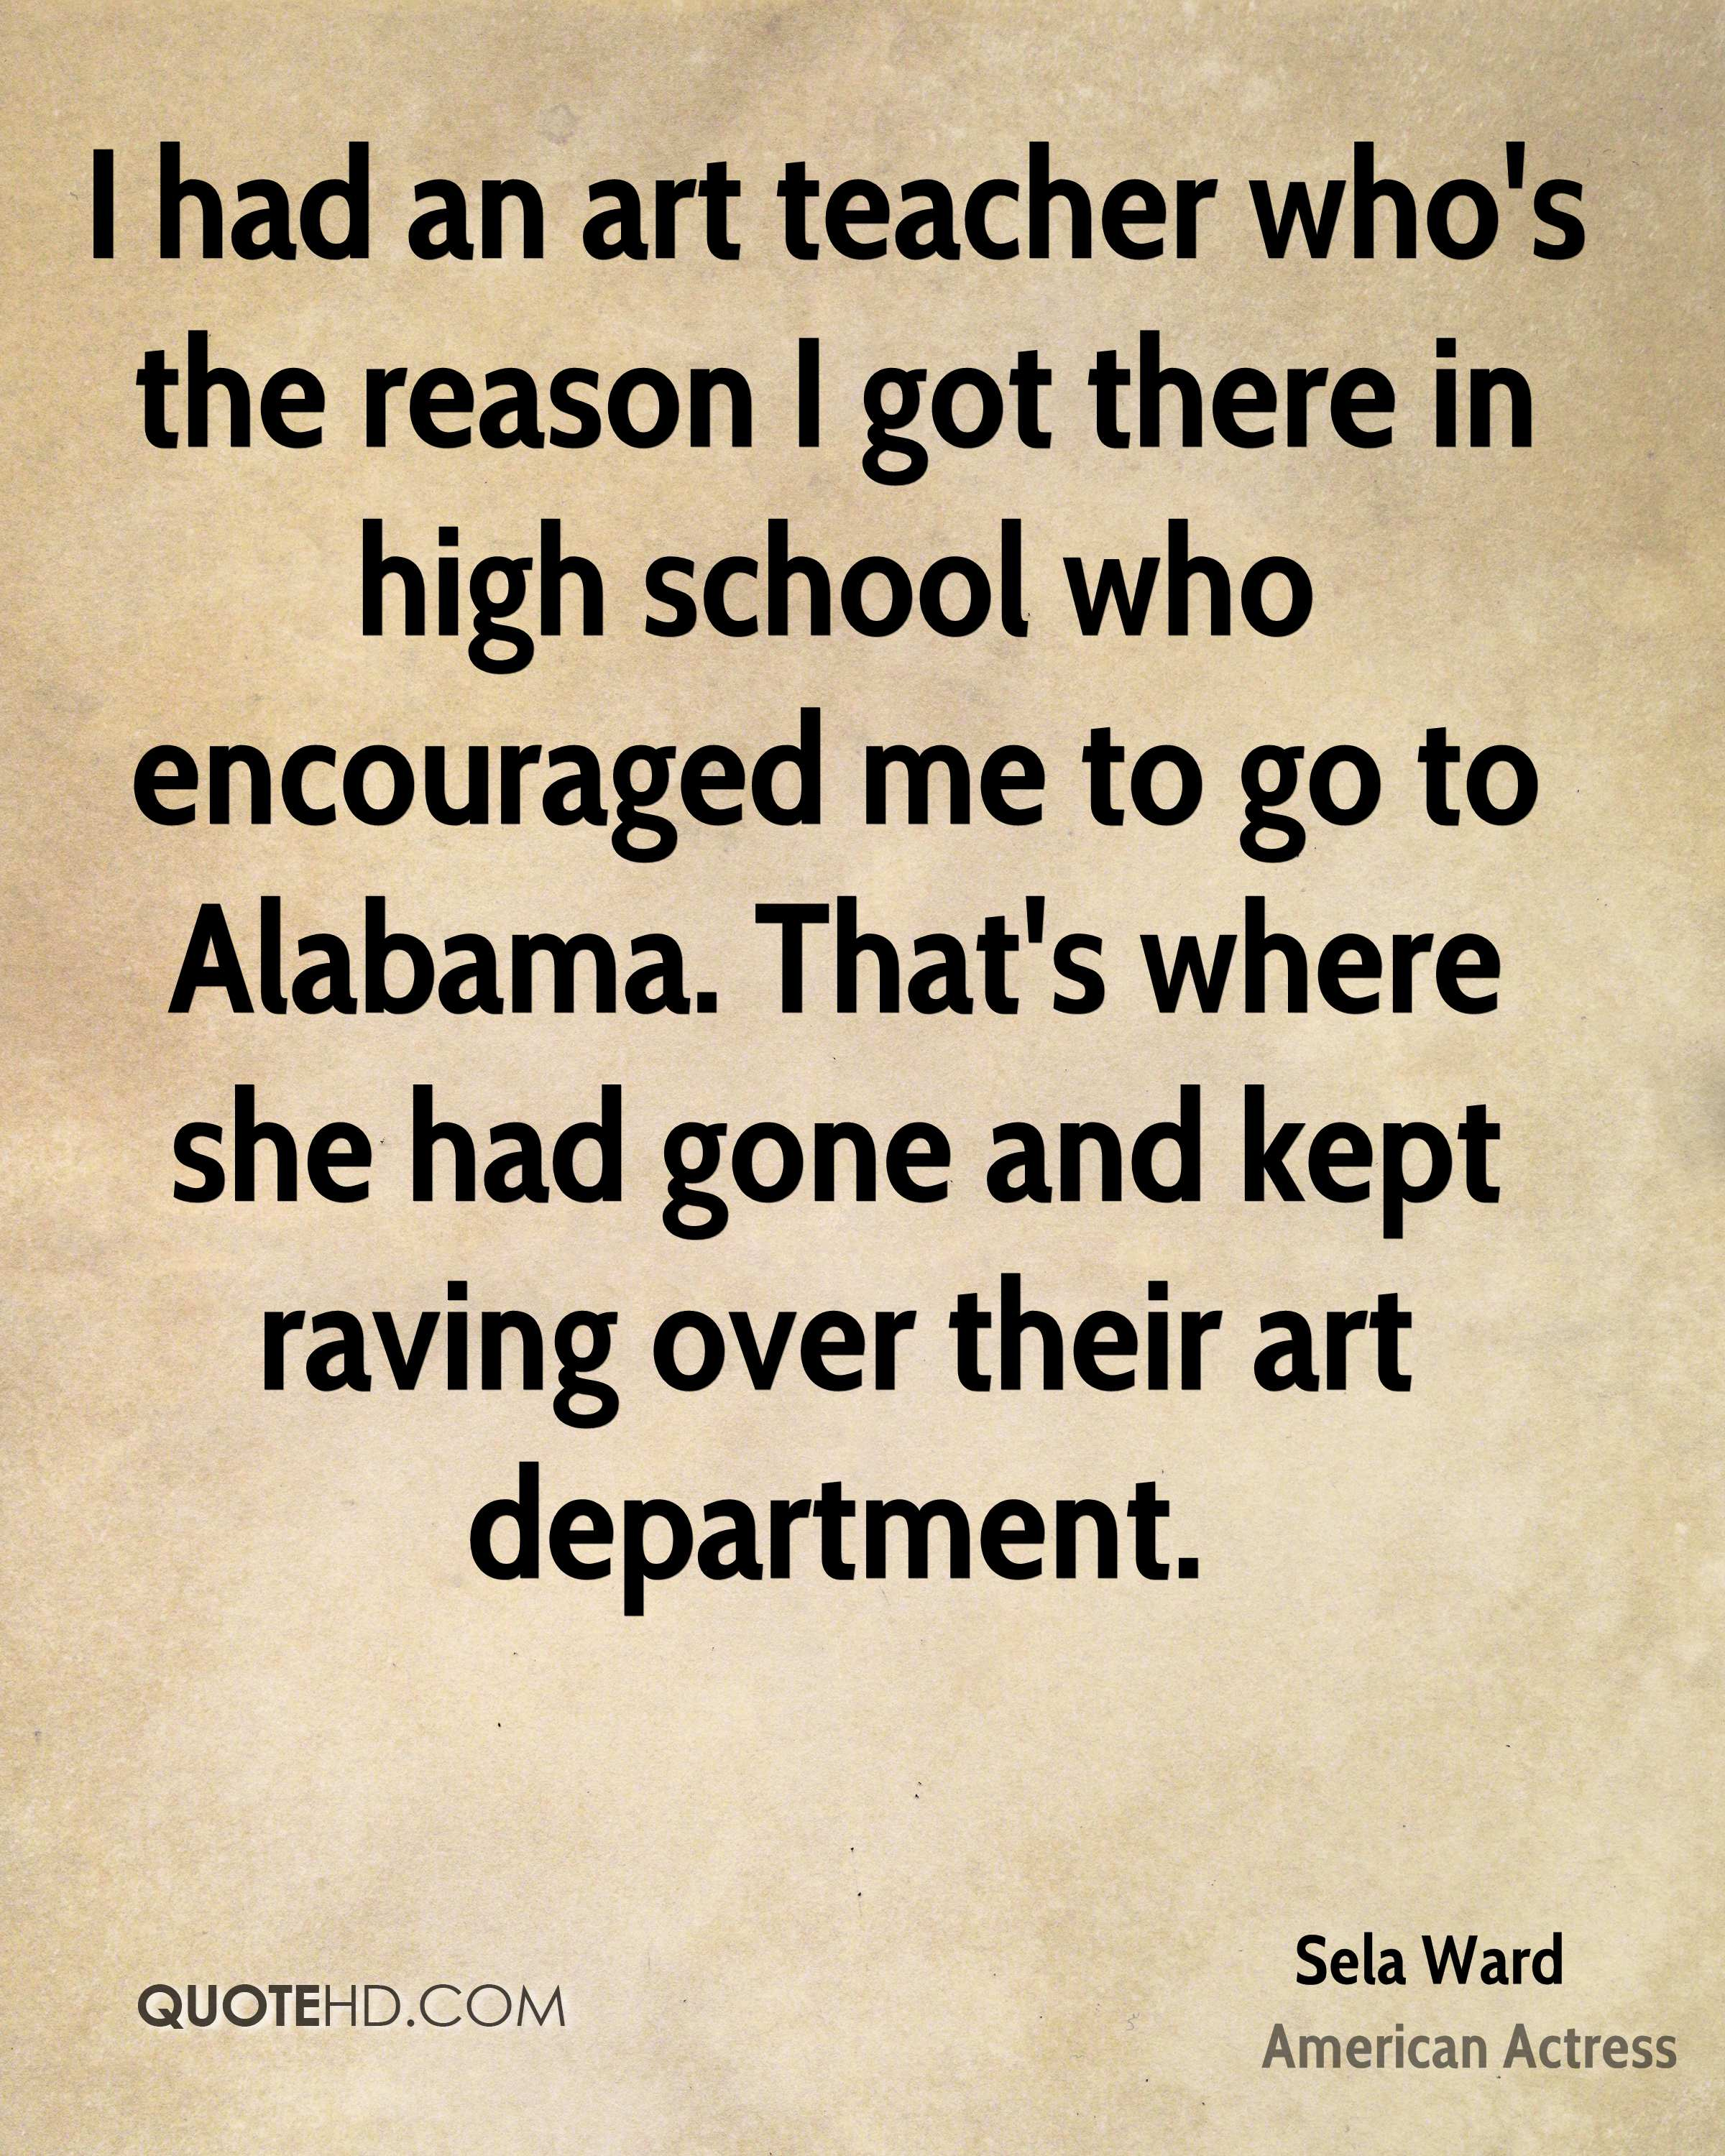 I had an art teacher who's the reason I got there in high school who encouraged me to go to Alabama. That's where she had gone and kept raving over their art department.